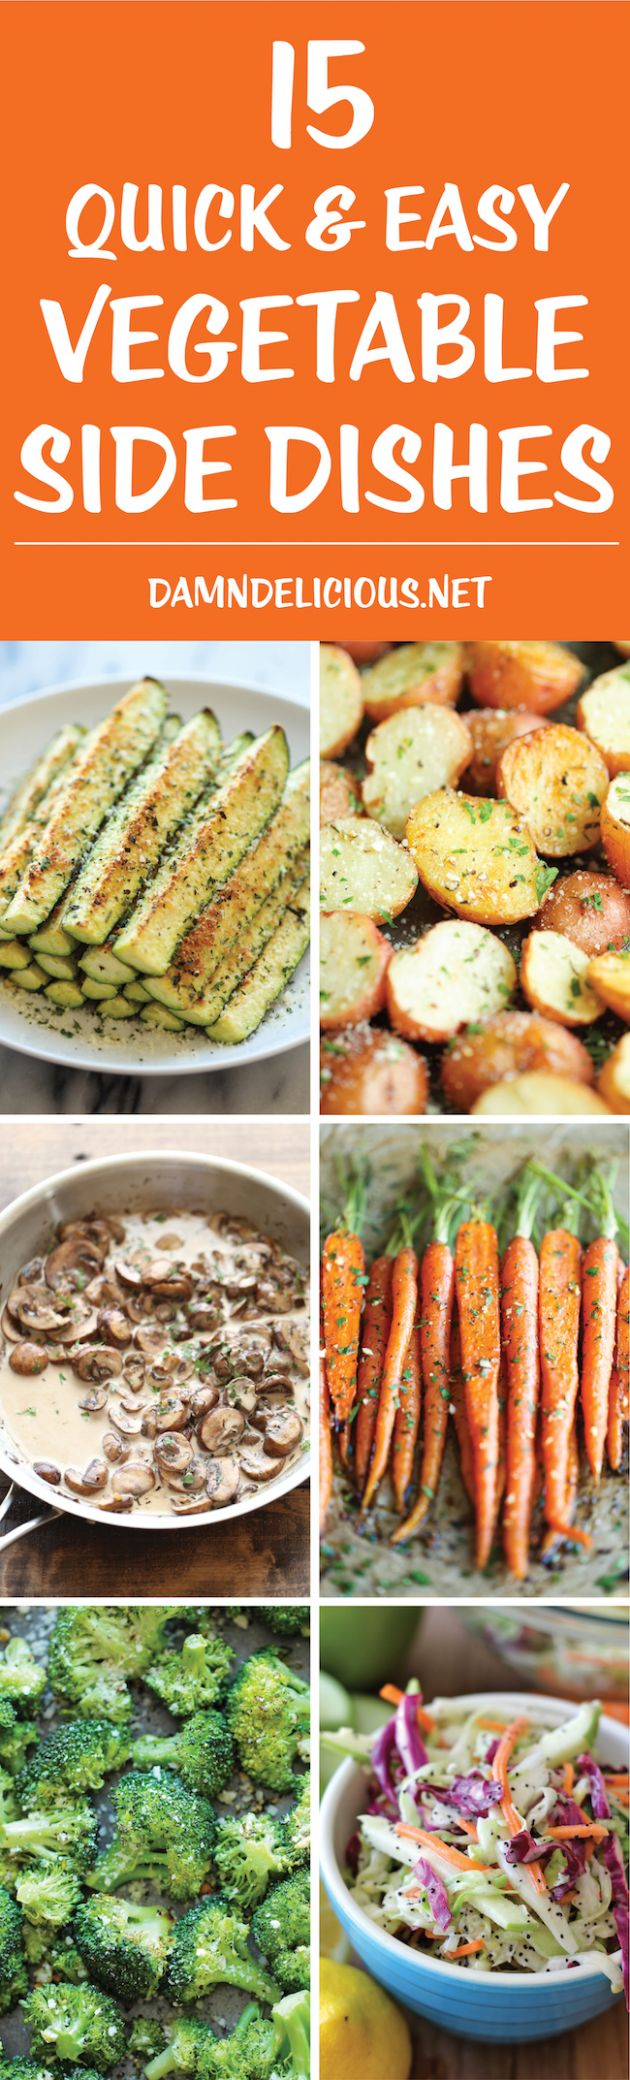 9 Quick and Easy Vegetable Side Dishes - Damn Delicious - Simple Recipes Vegetables